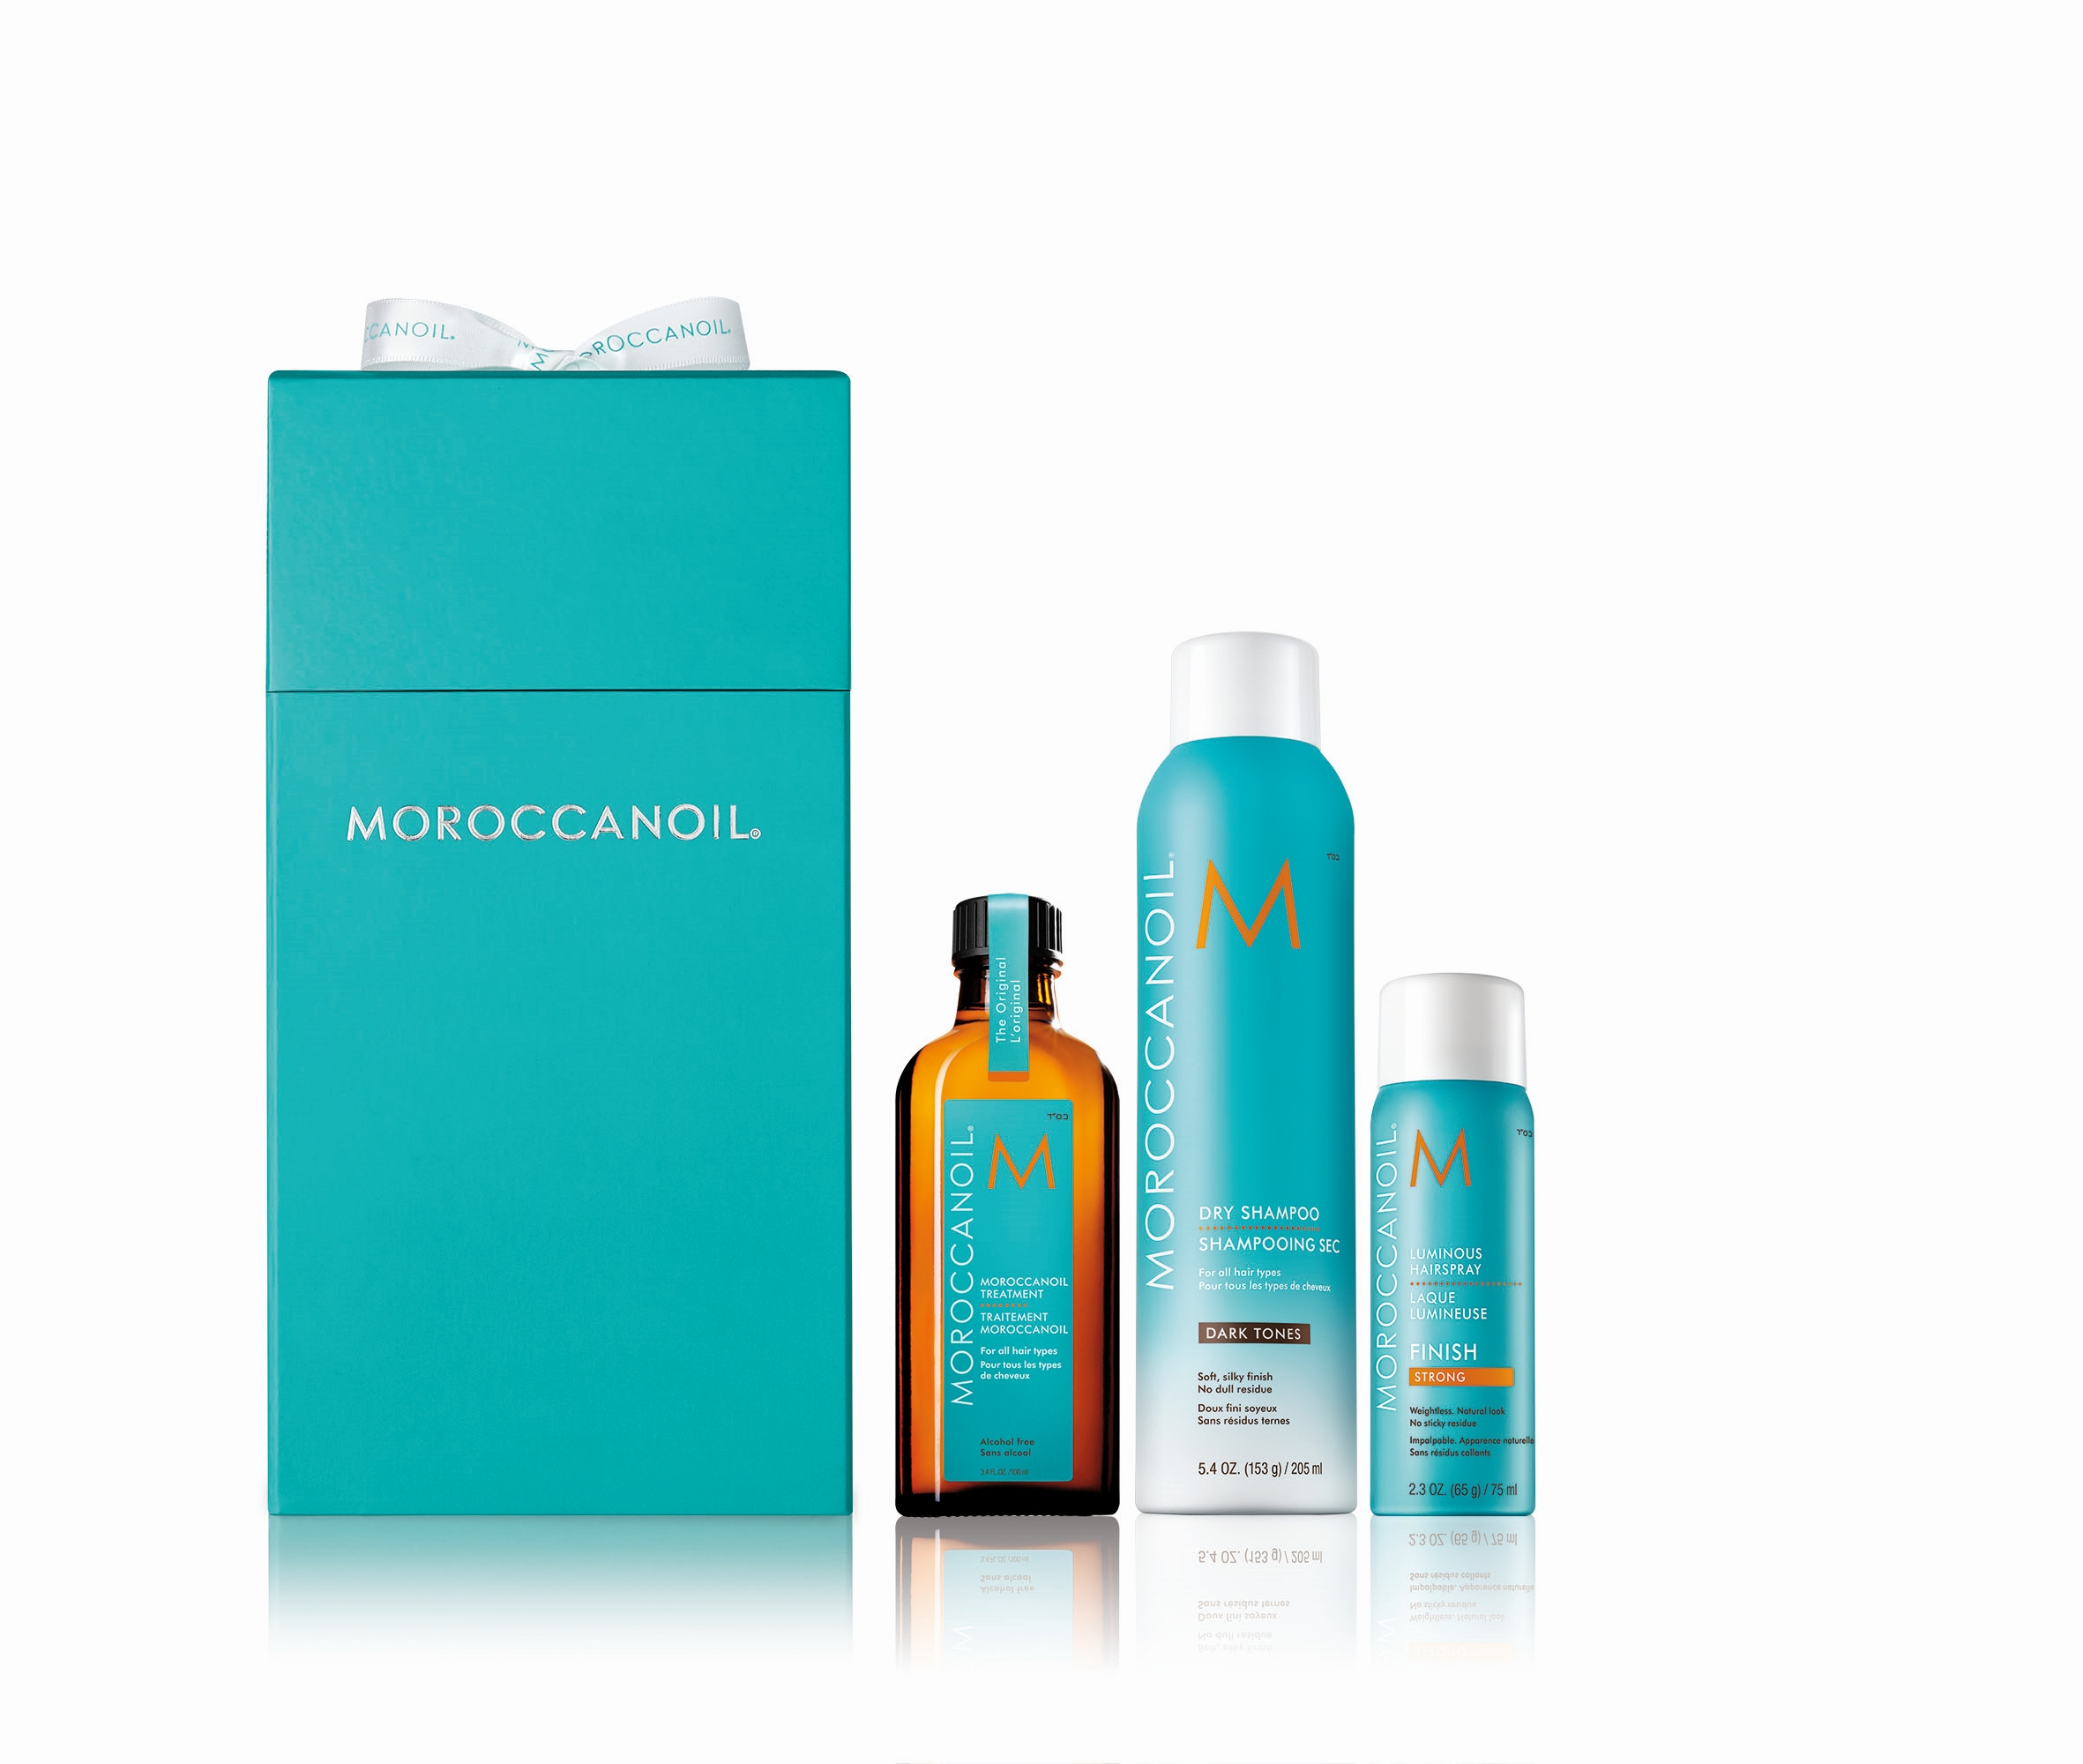 Moroccanoil Cleanse and go dark ערכת חג 279שח צילום ריצ'ארד פאיירס